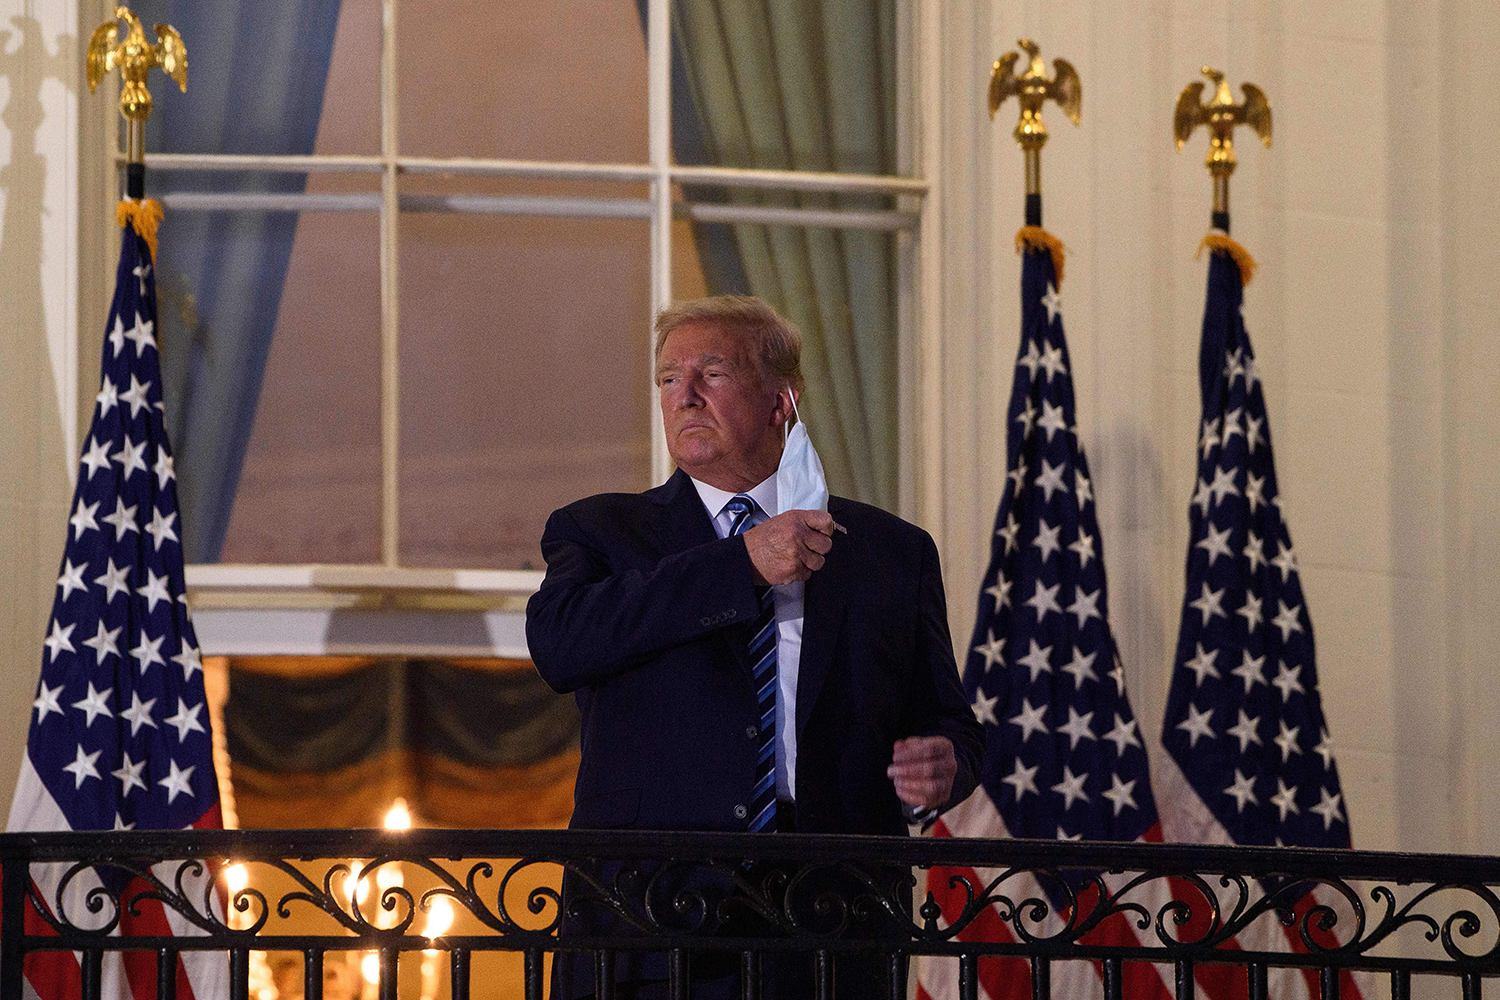 U.S. President Donald Trump takes off his face mask as he arrives at the White House upon his return from Walter Reed Medical Center, where he underwent treatment for COVID-19, in Washington on Oct. 5. NICHOLAS KAMM/AFP via Getty Images